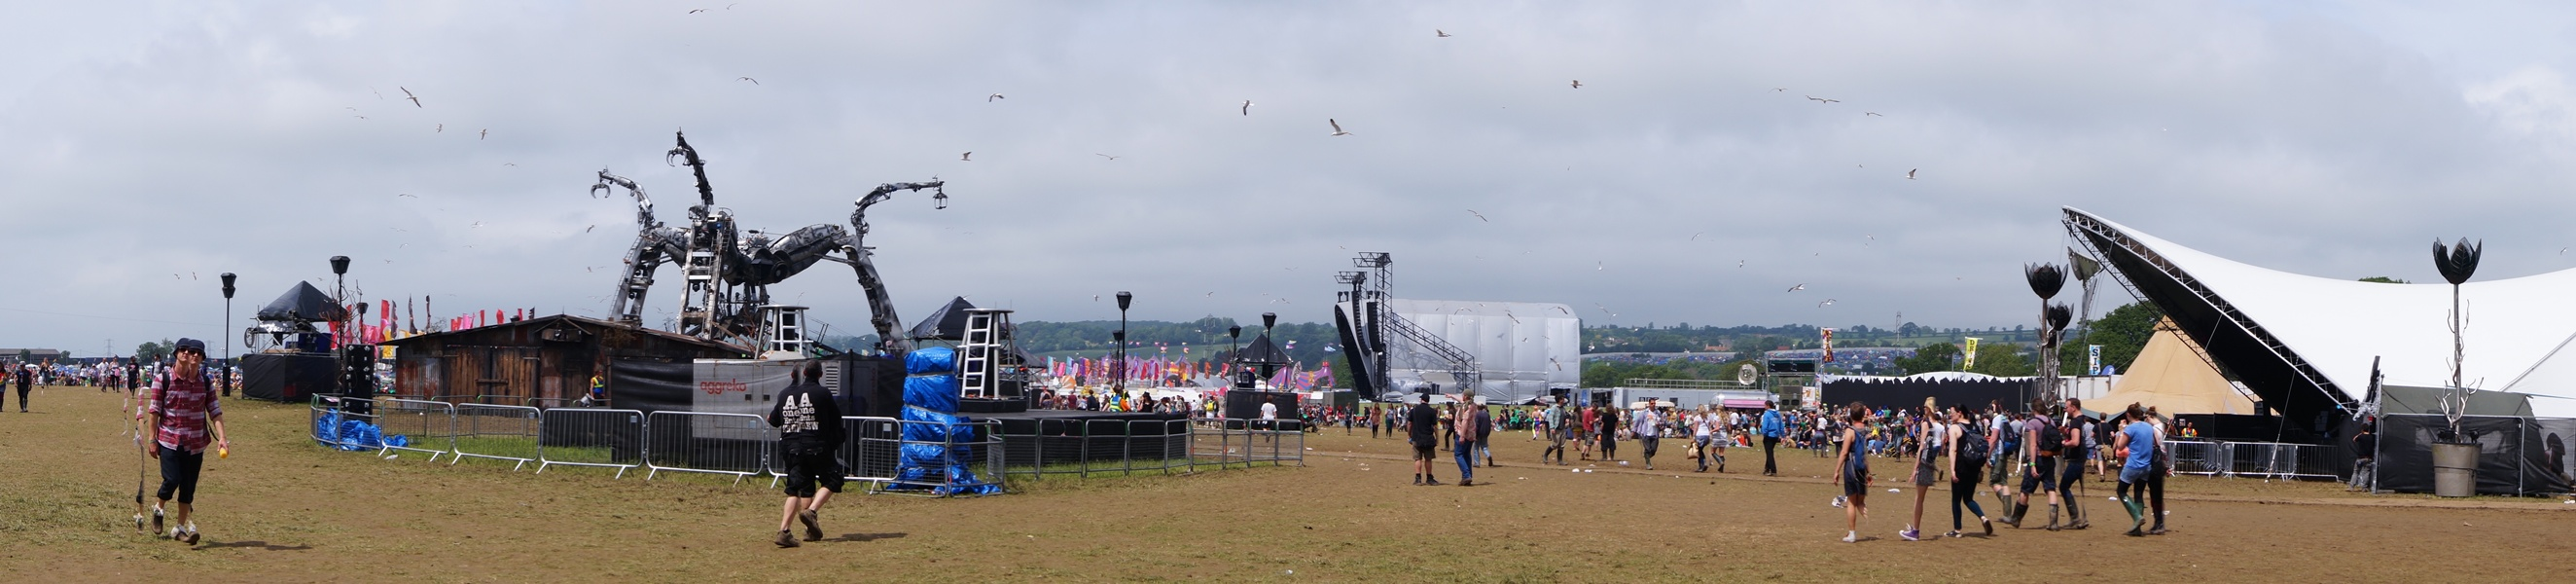 Arcadia i Other Stage